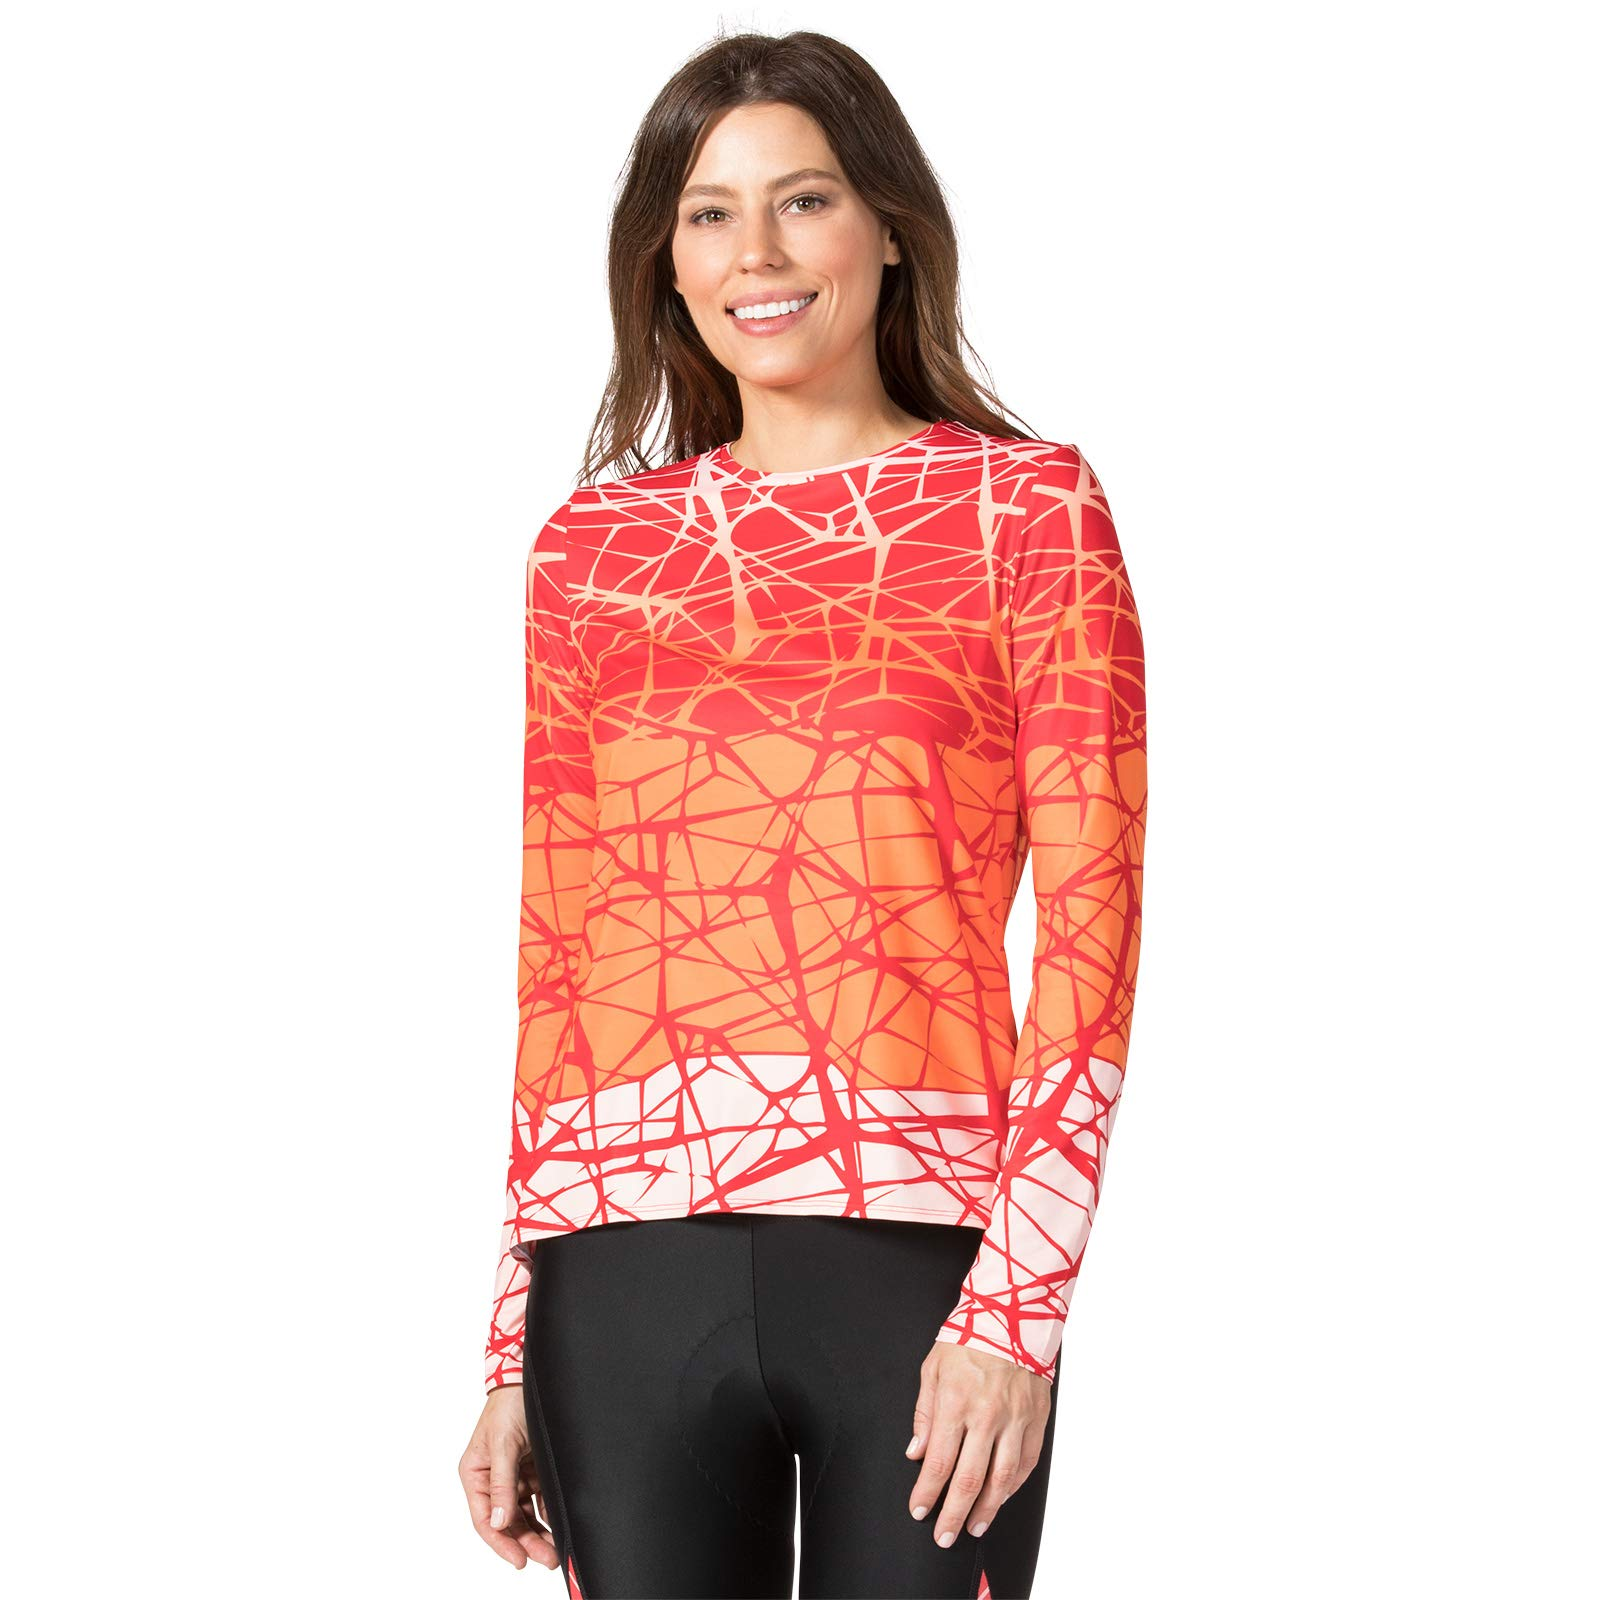 Terry Soleil Flow Long Sleeve Cycling Top for Women - Lightweight Ladies Athletic Top with UPF 50+ Sun Protection- Tangled/Coral - XX Large by Terry